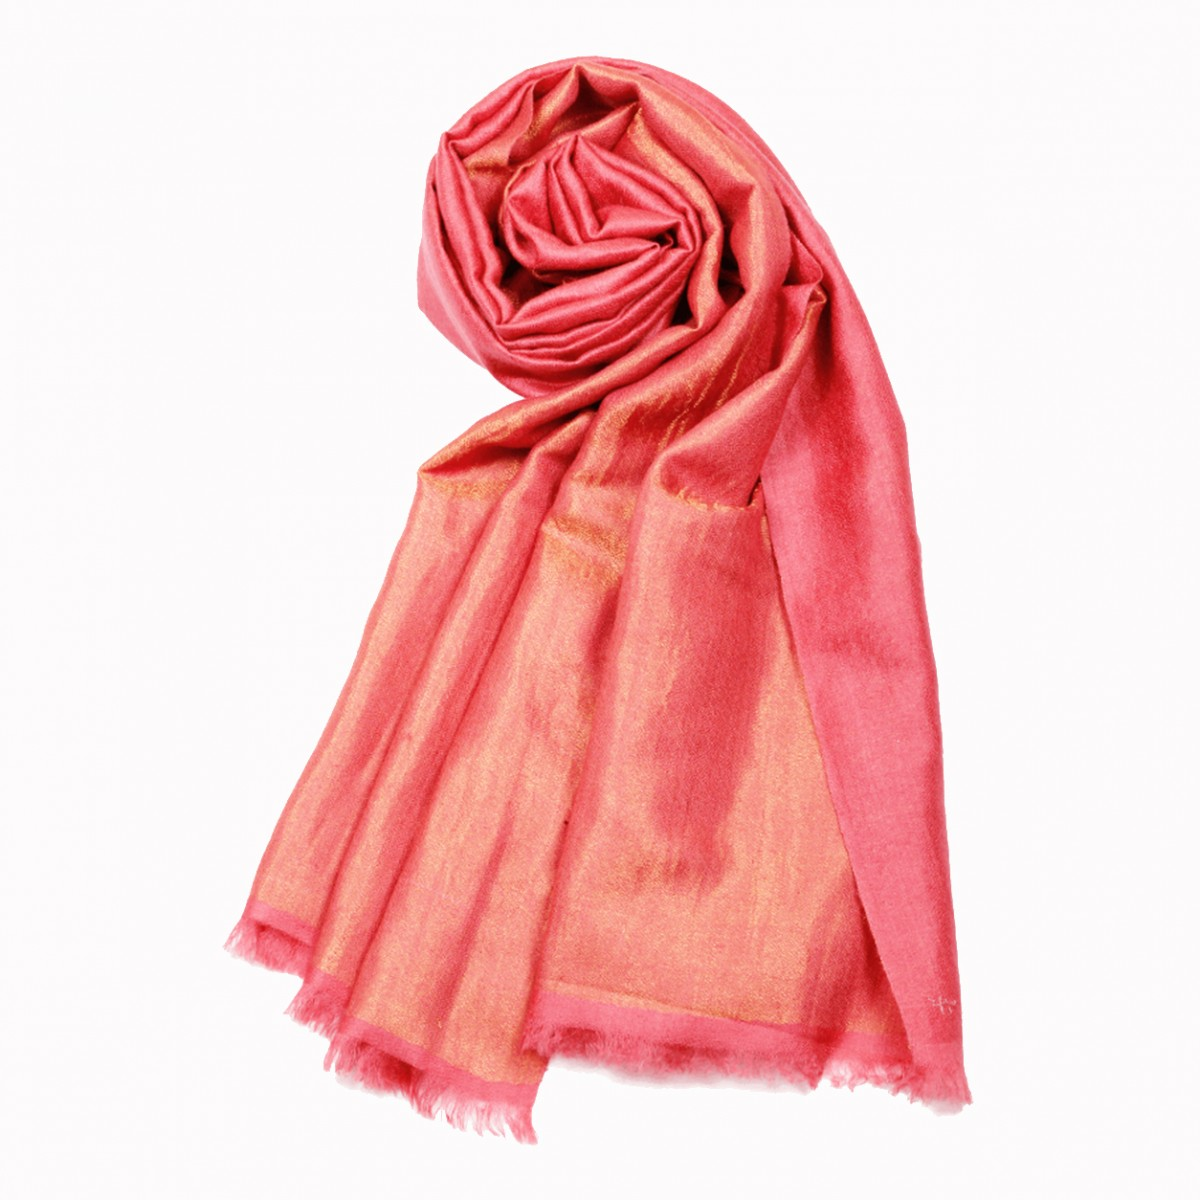 Metallic Dorukha Pashmina Stole - Coral and Gold